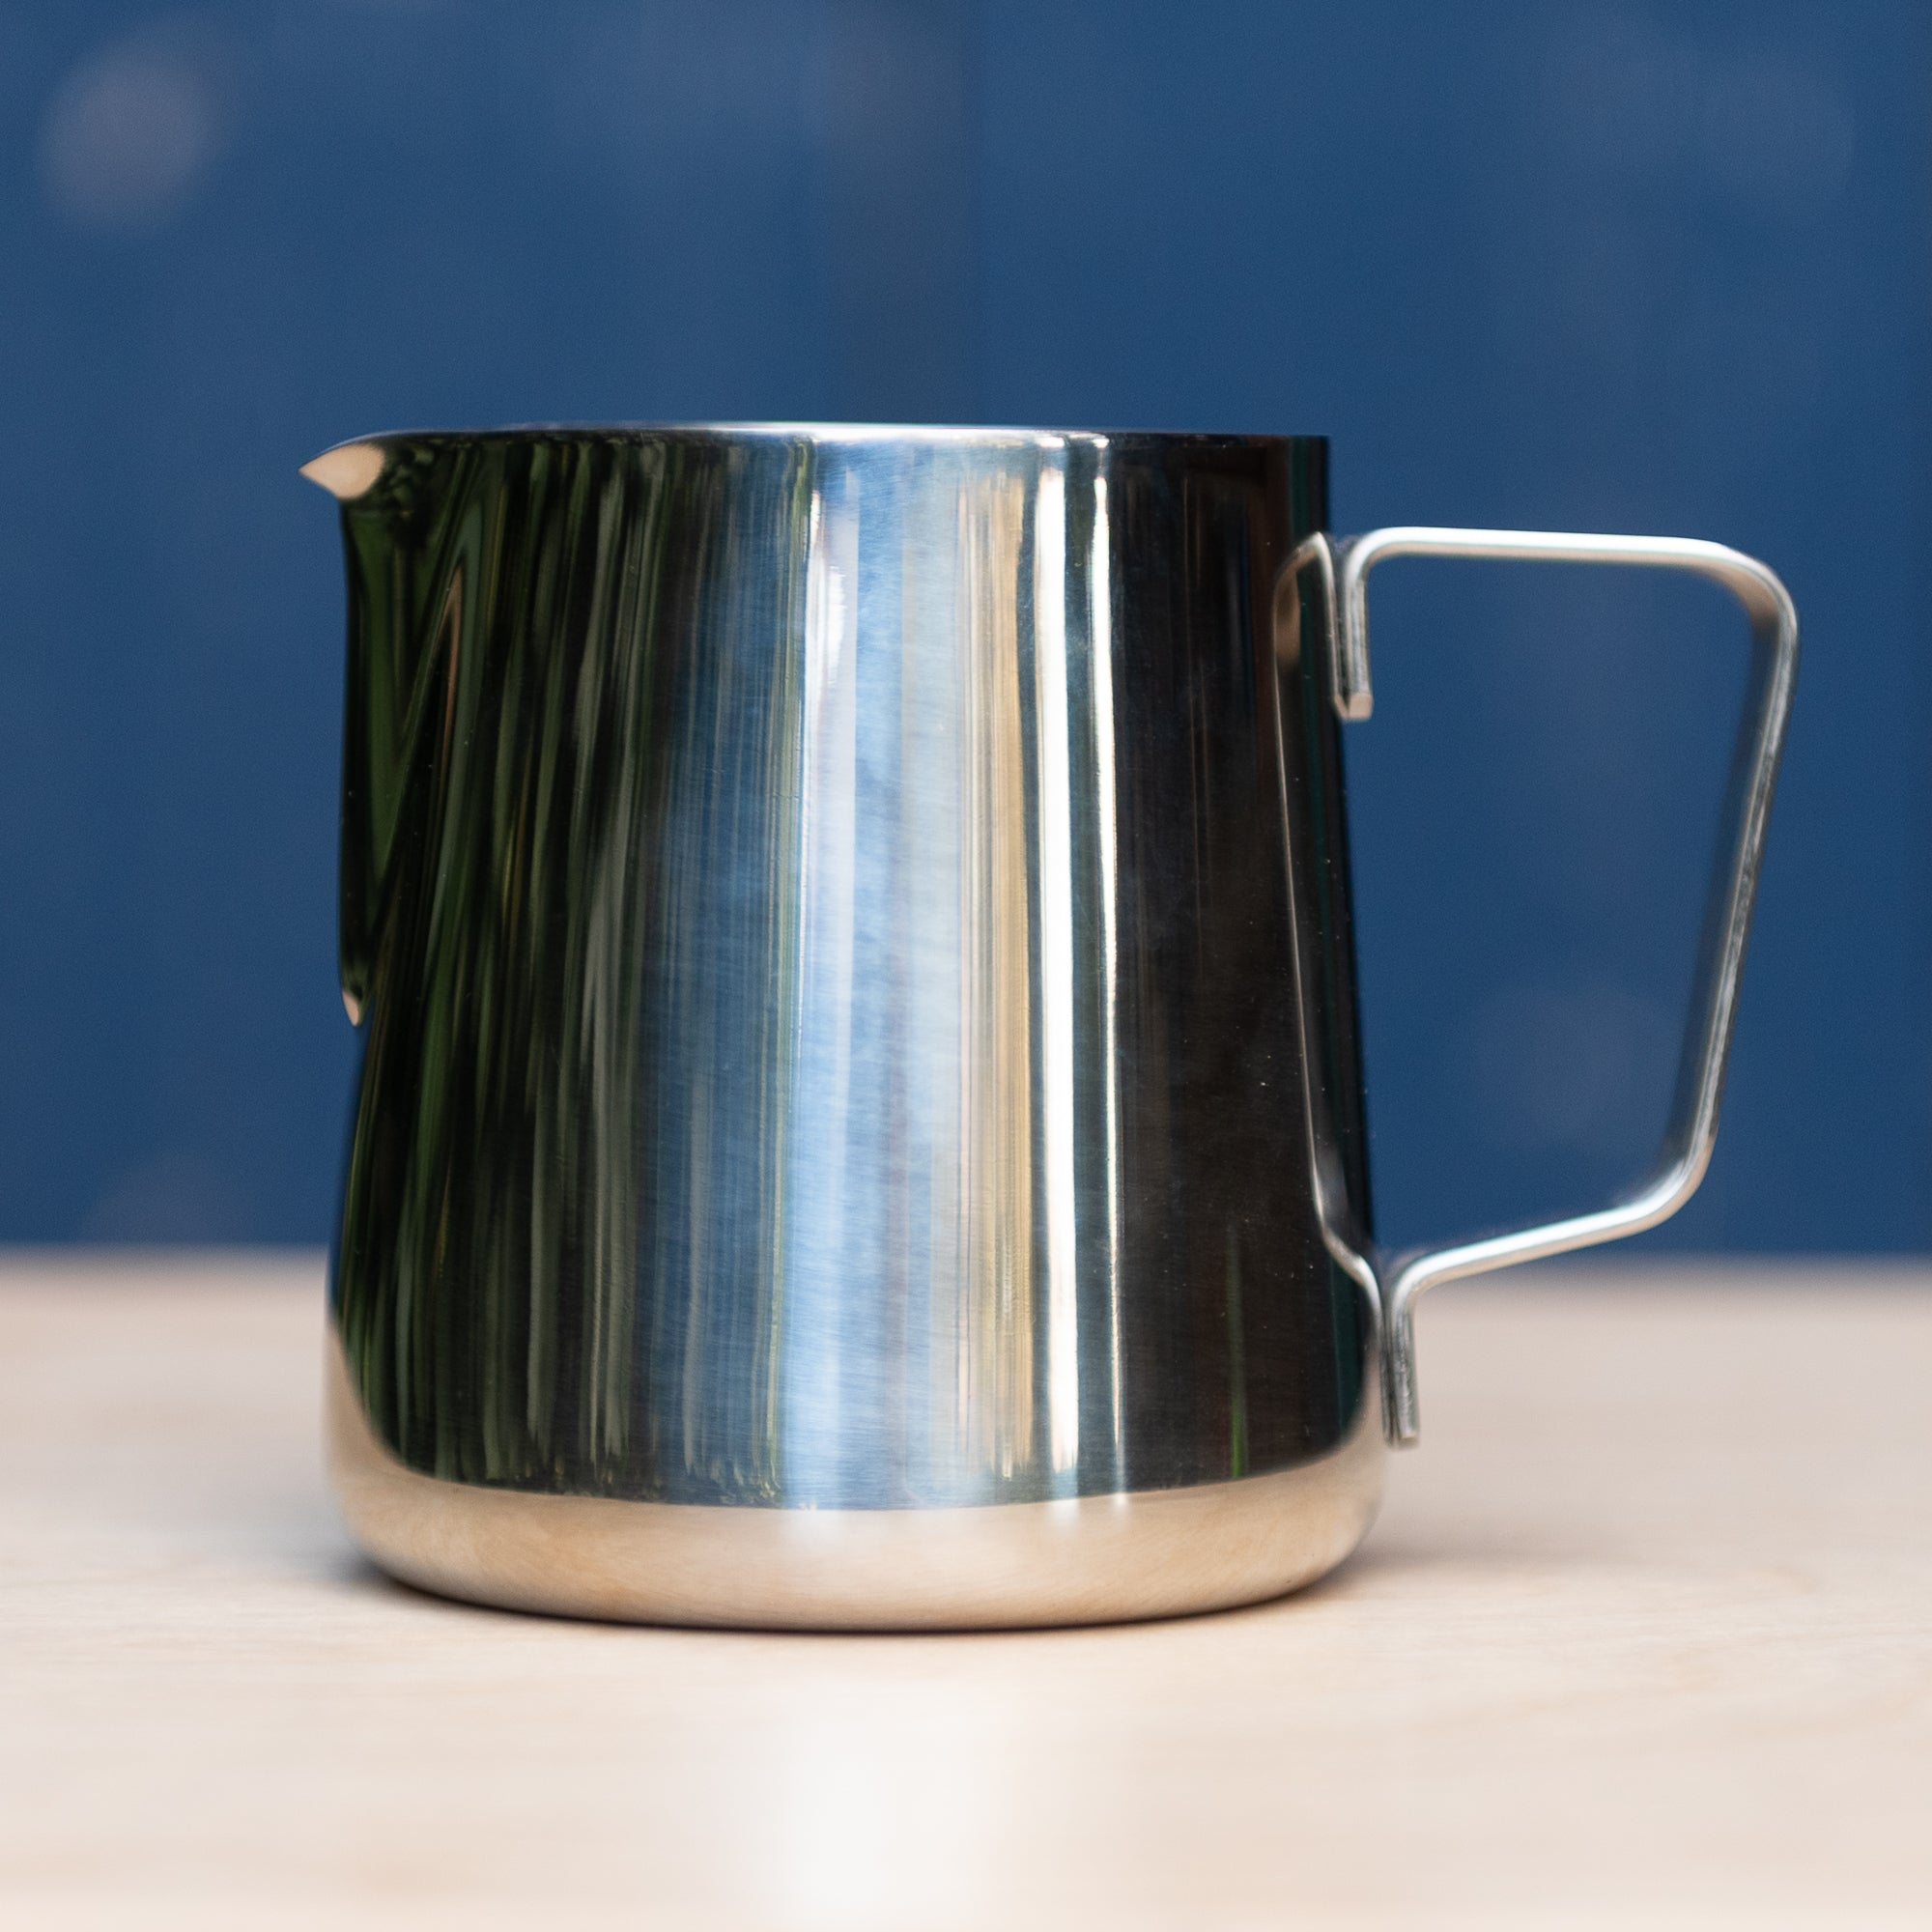 12oz Stainless Steel Frothing Pitcher